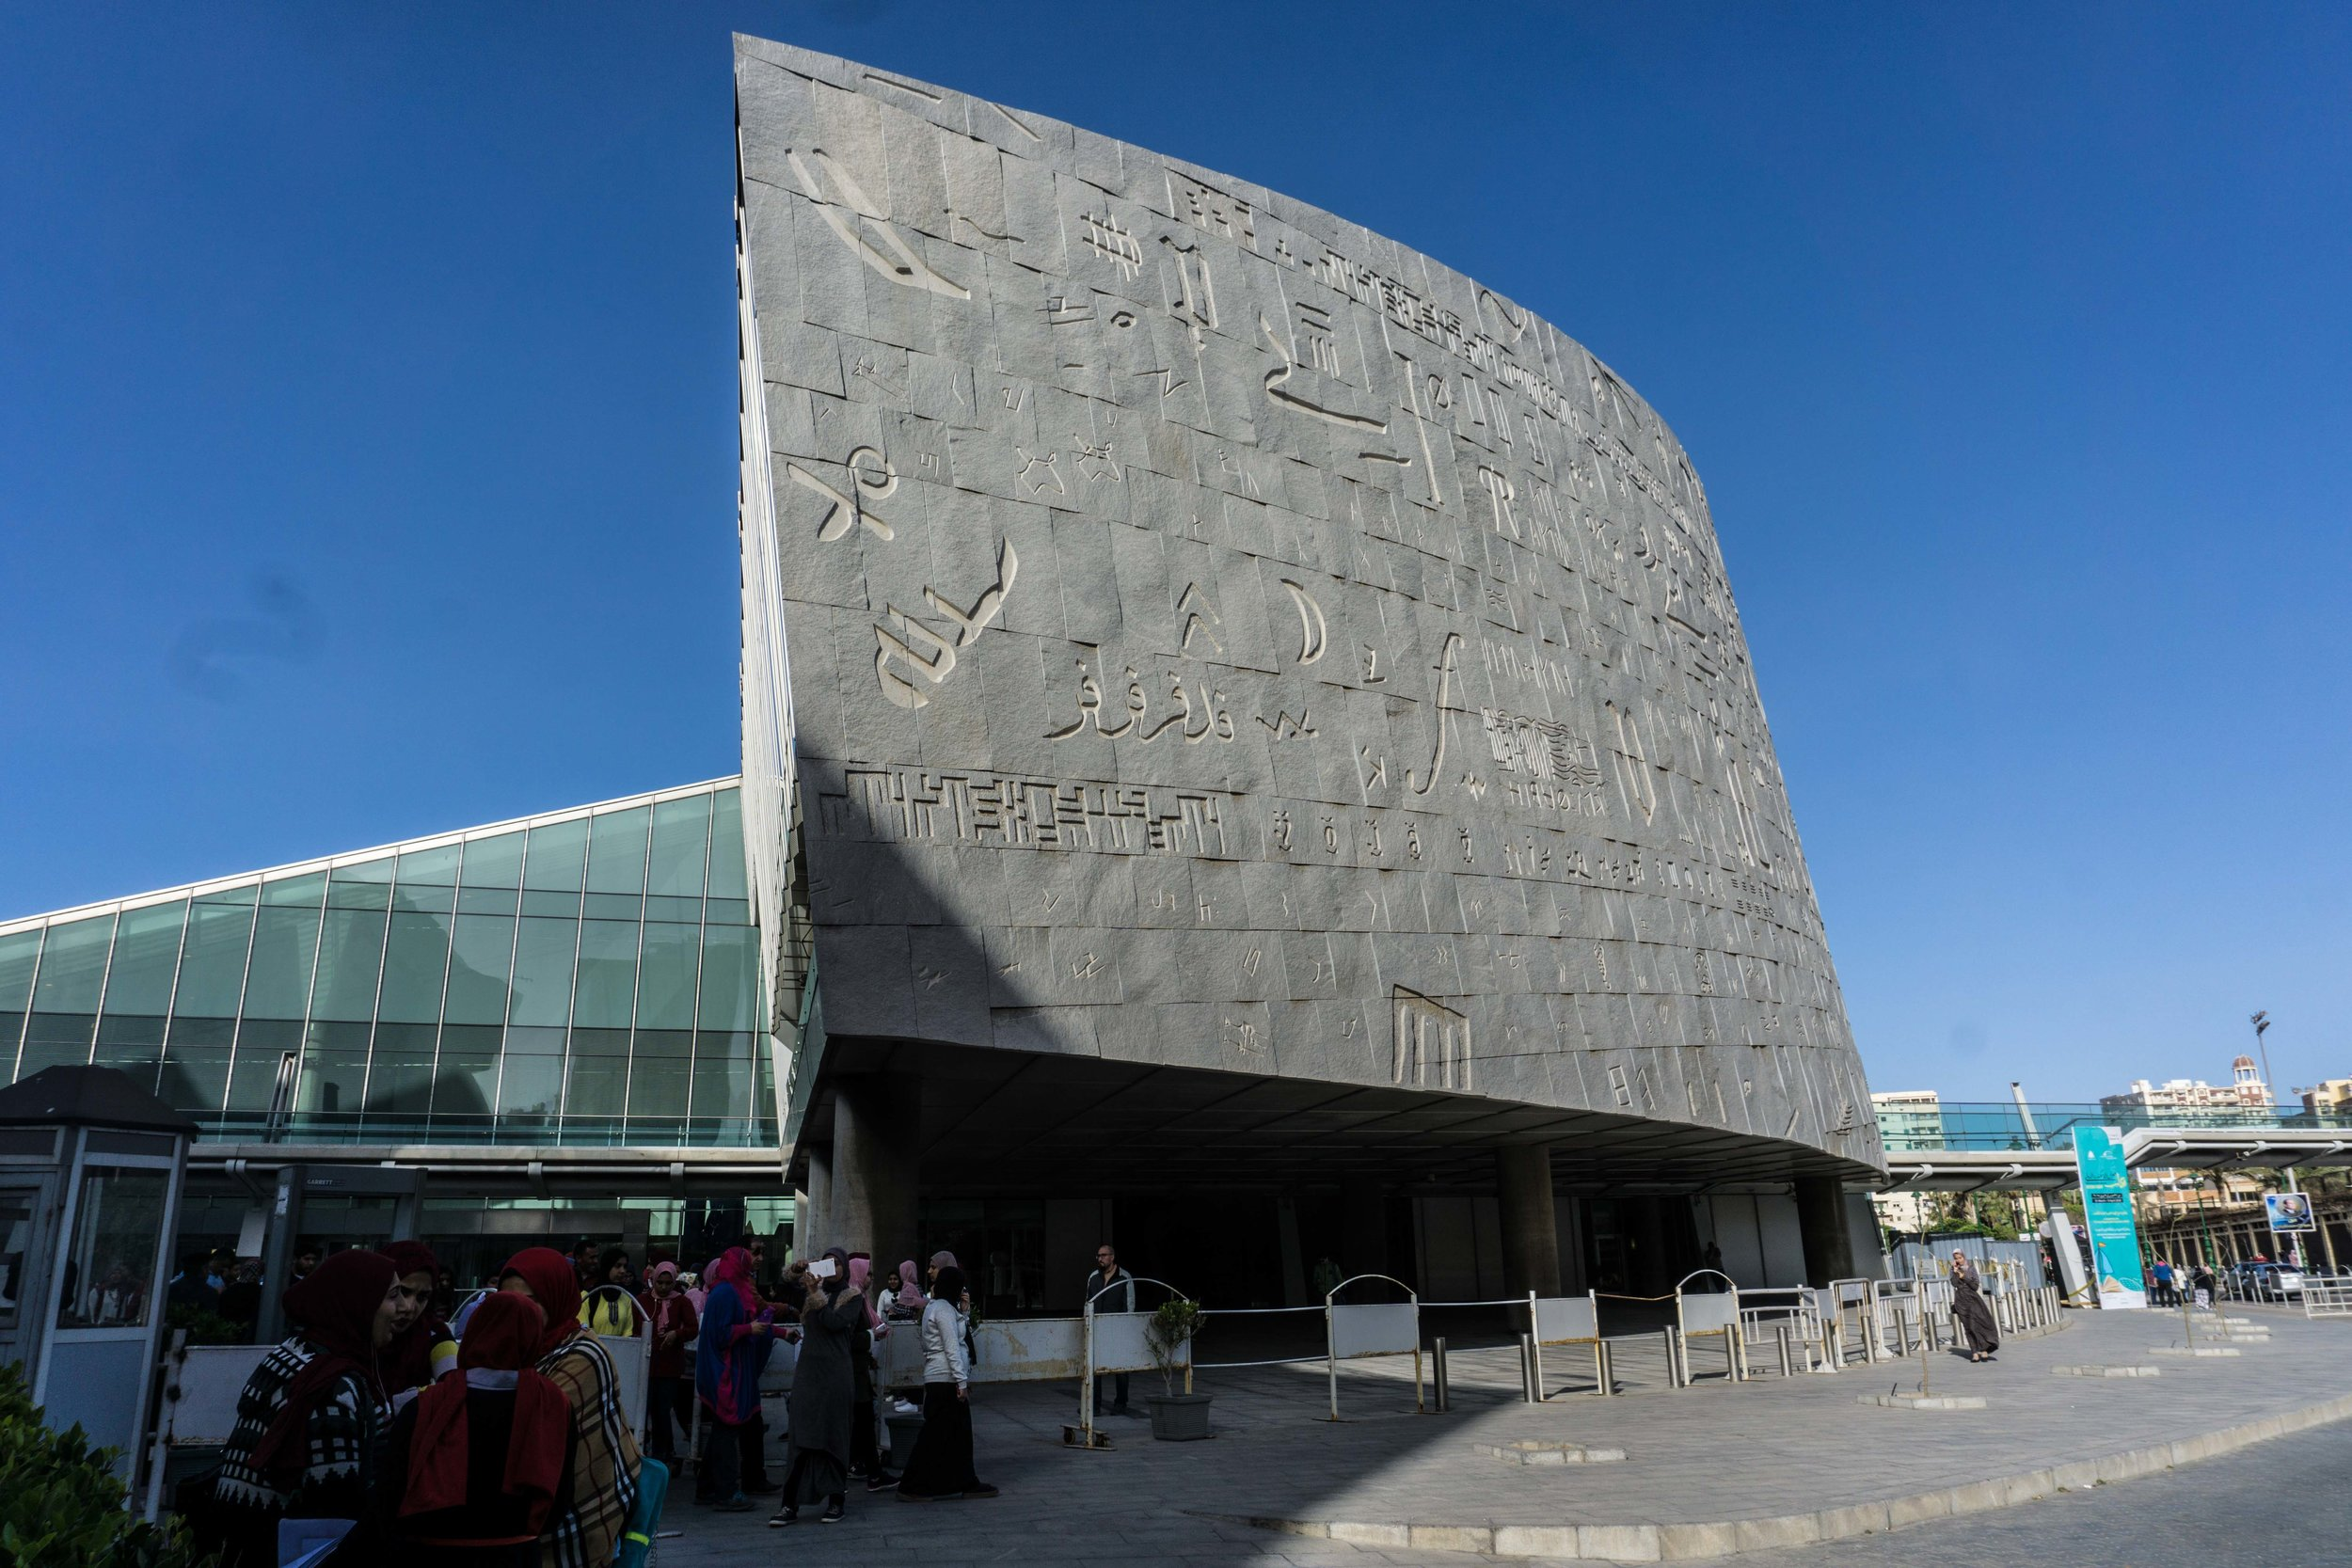 Library of Alexandria - a little different than it used to look probably